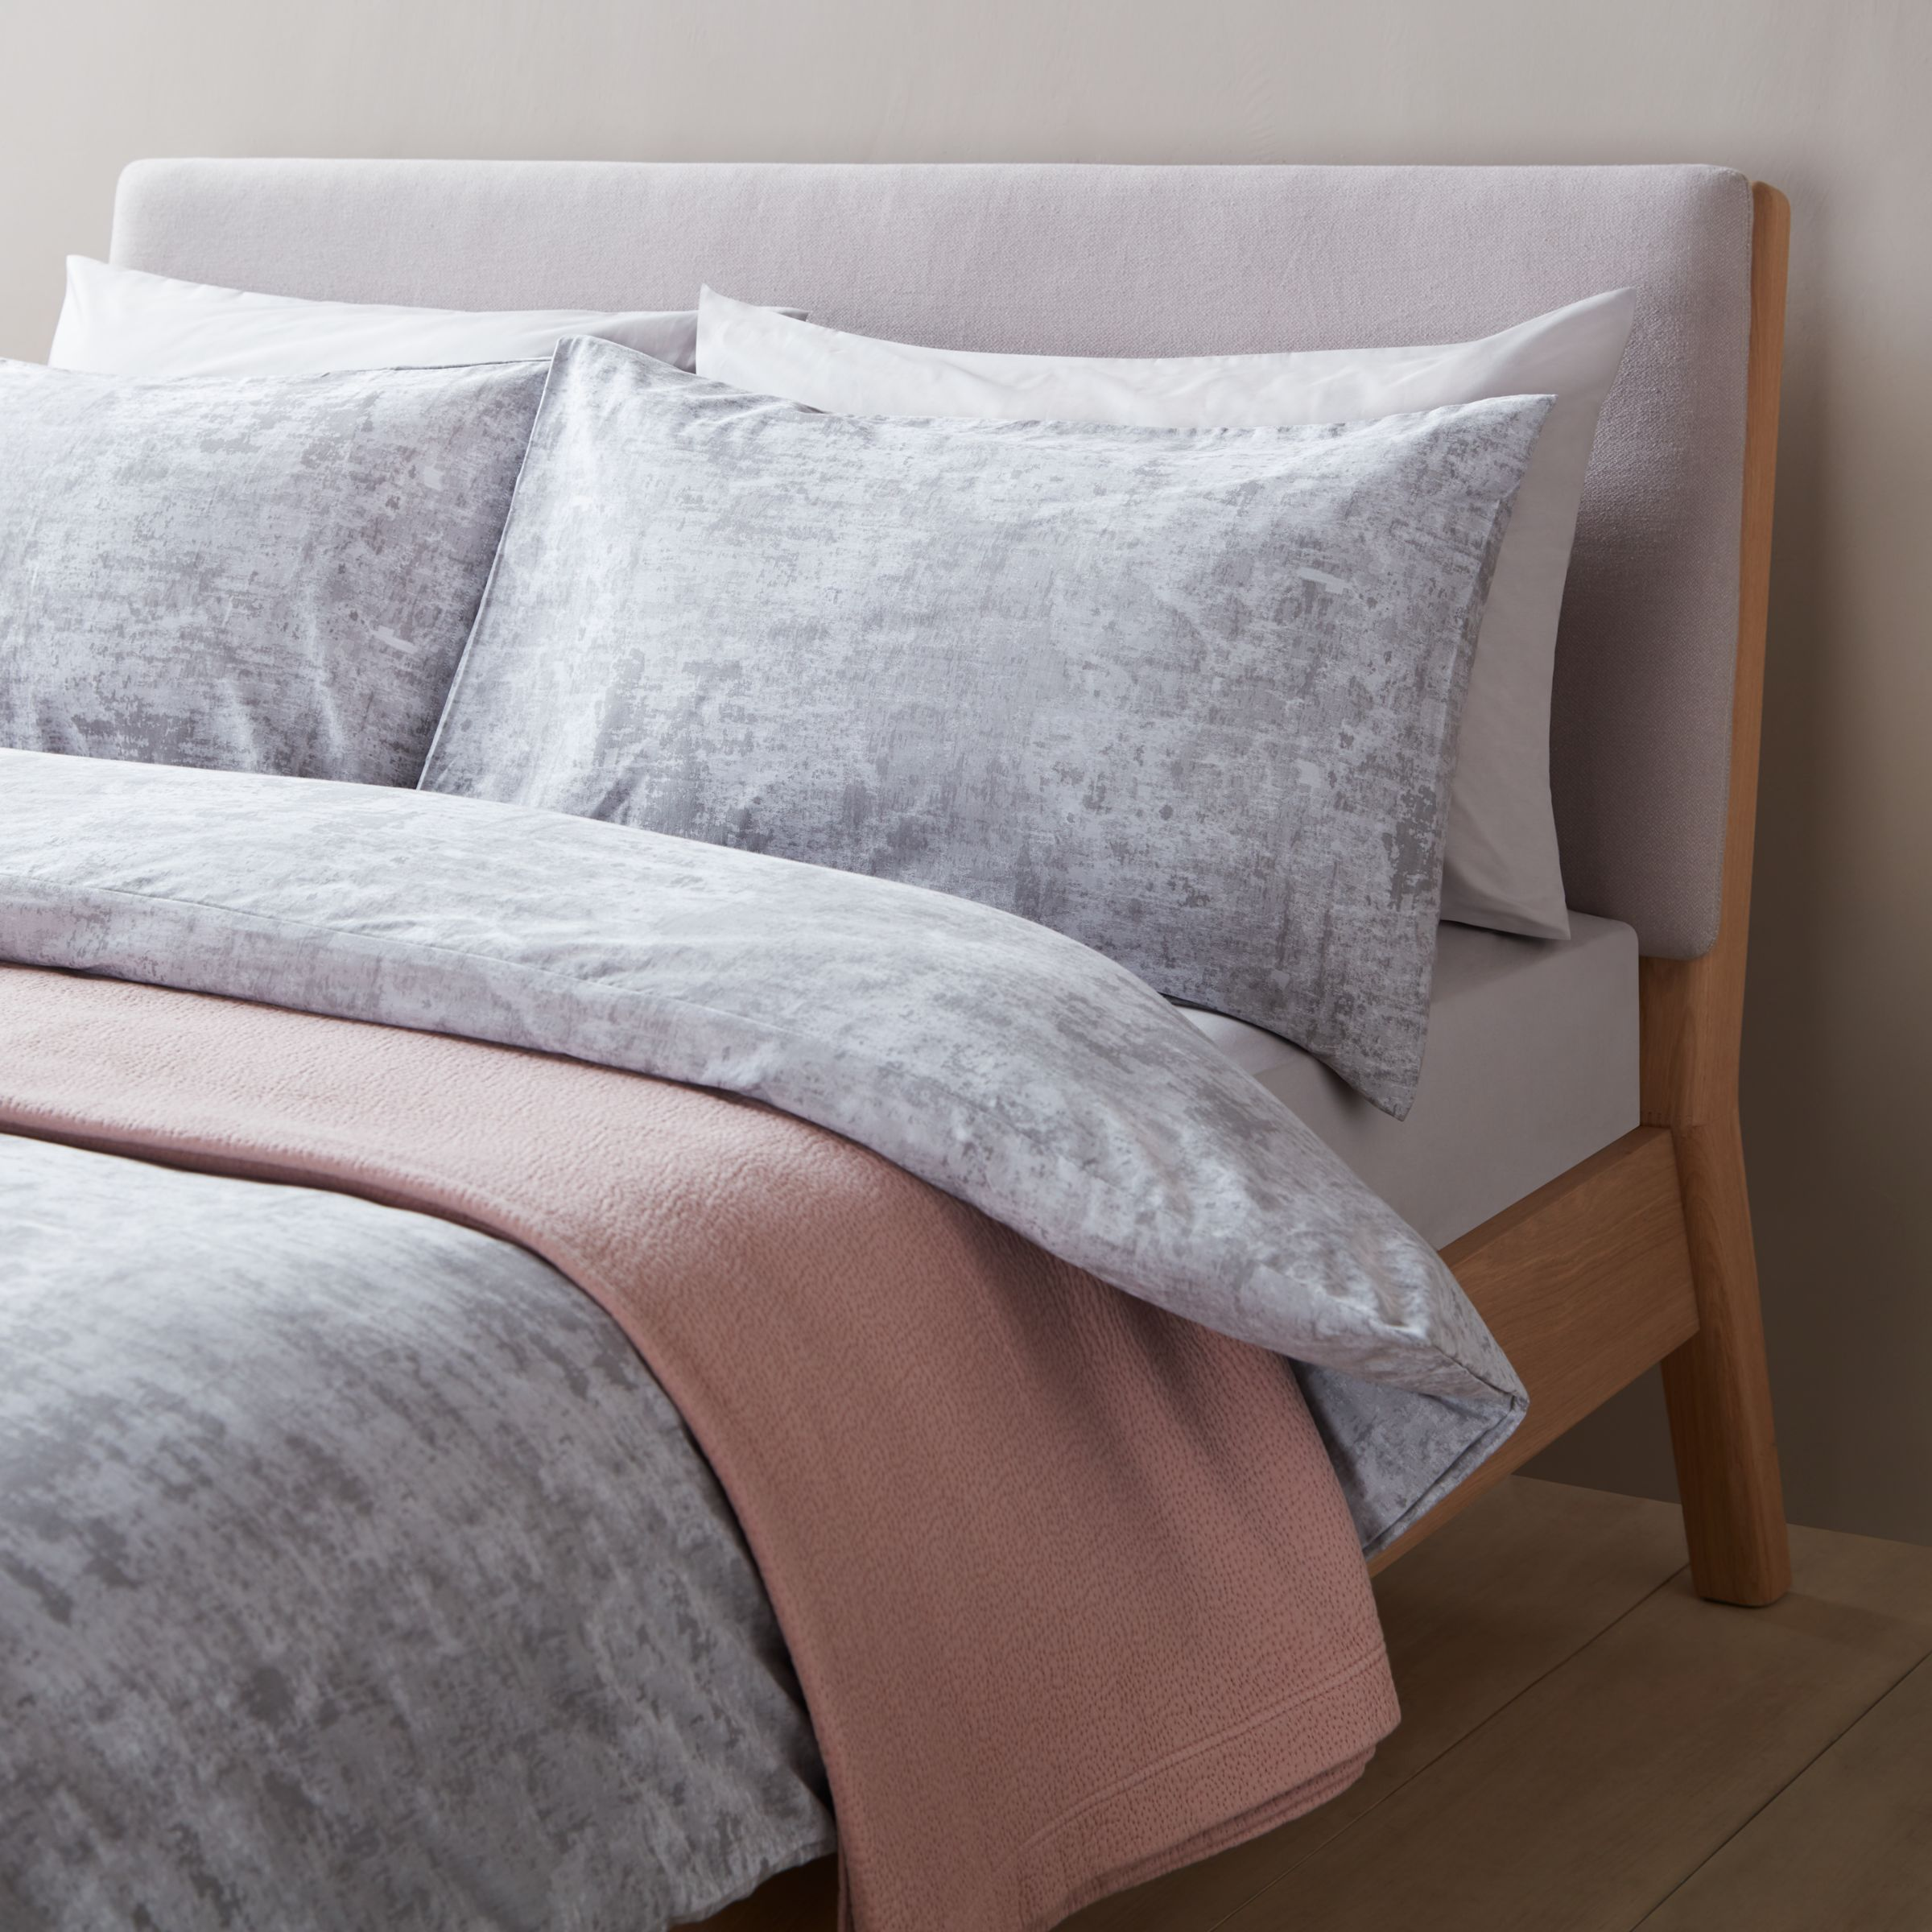 Design Project by John Lewis Design Project by John Lewis No.162 Bedding, Grey